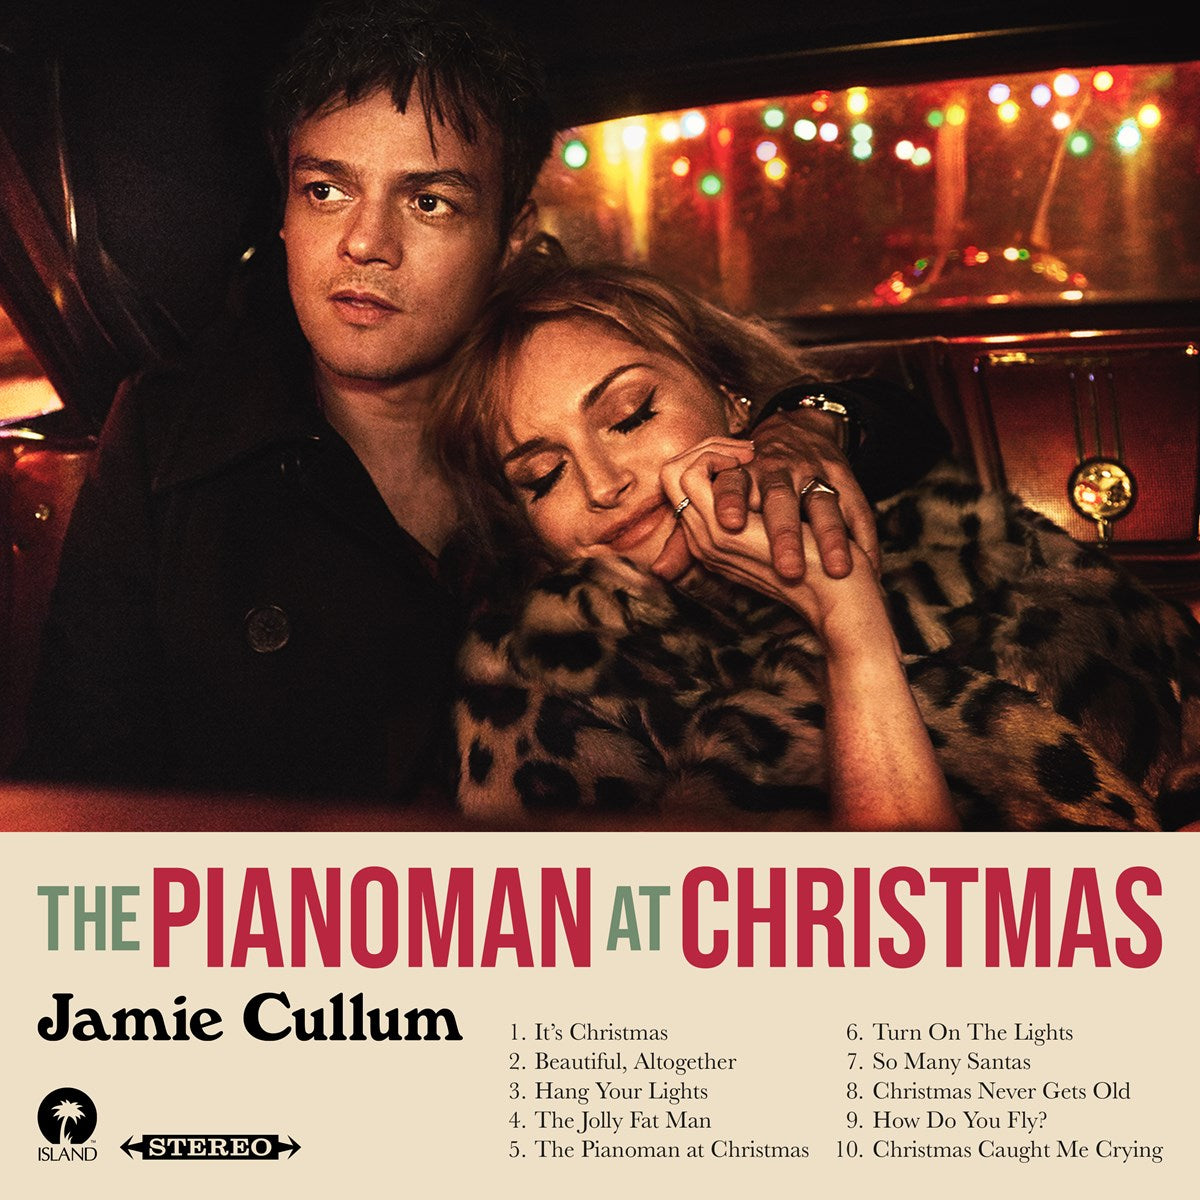 Jamie Cullum – The Pianoman At Christmas Limited Edition Red Colour 180g Vinyl Record Album